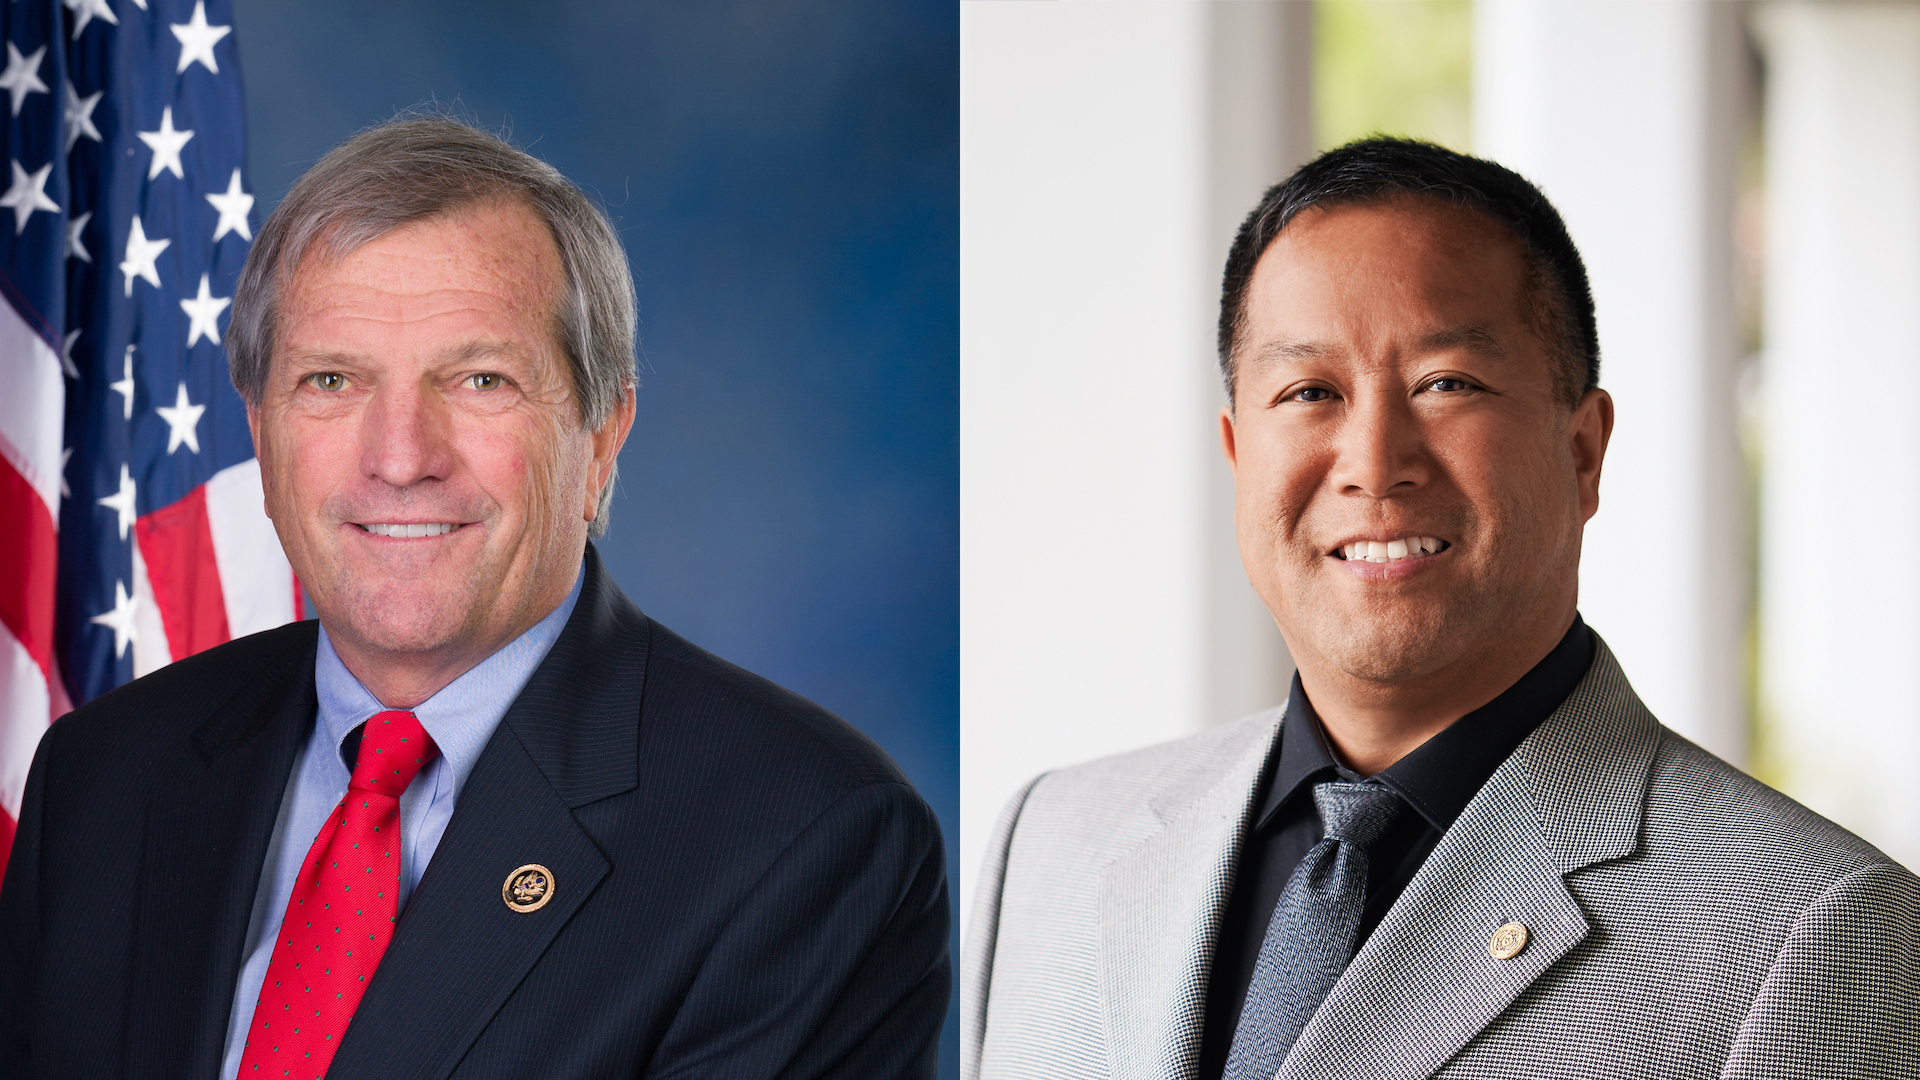 U.S. Congressman Mark DeSaulnier, Convergent Computing CEO Rand Morimoto, will deliver the keynote speeches at SMC's 2019 Commencement.